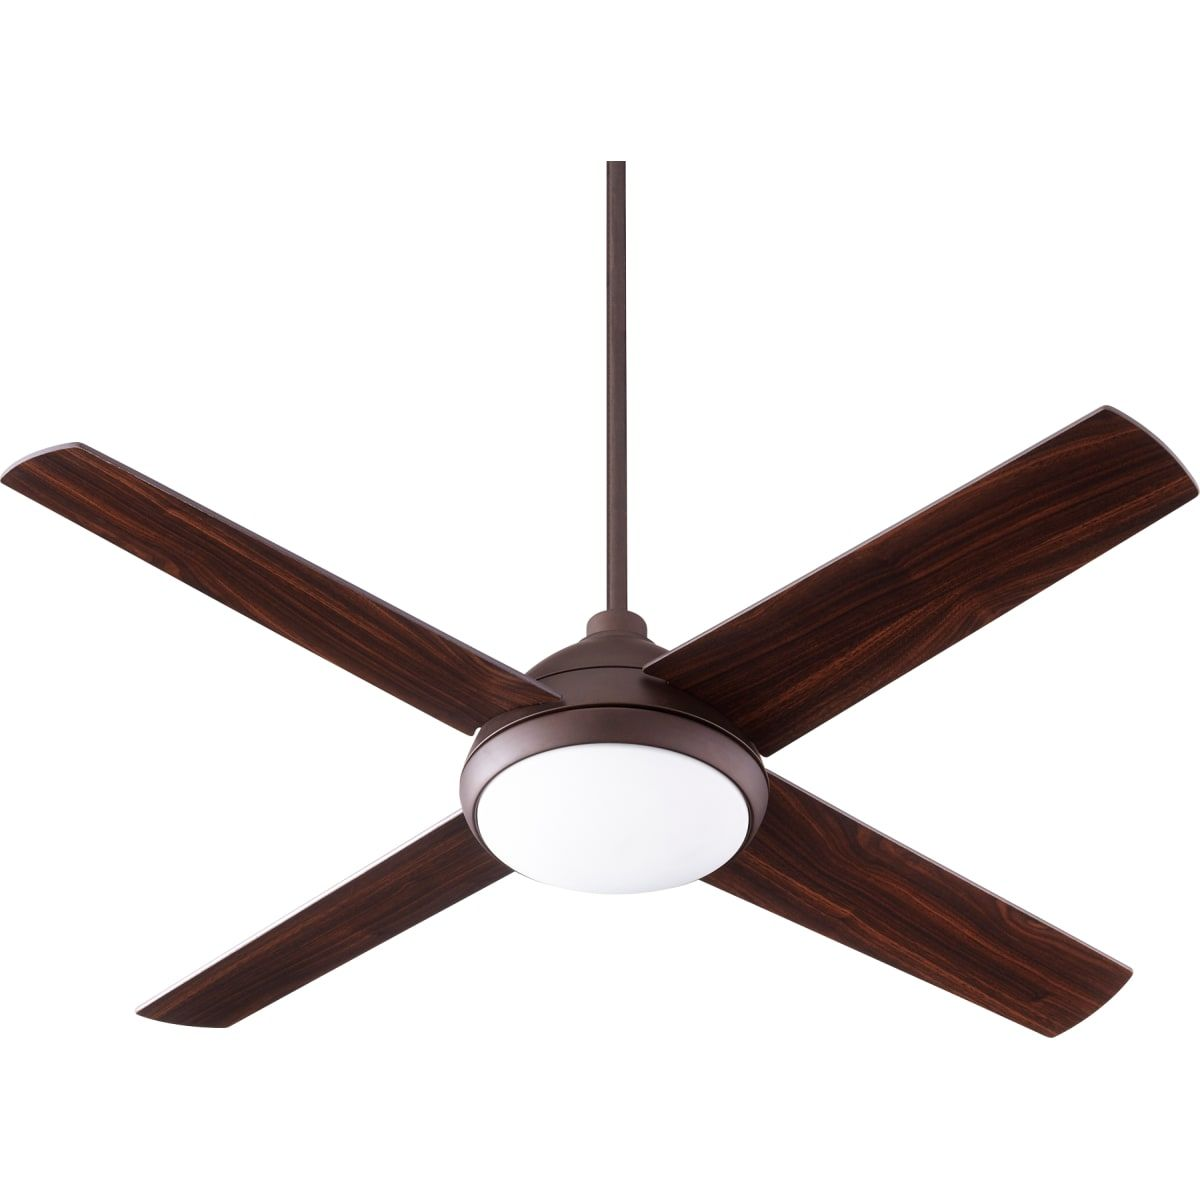 Quorum International 68524 Transitional Ceiling Fans Ceiling